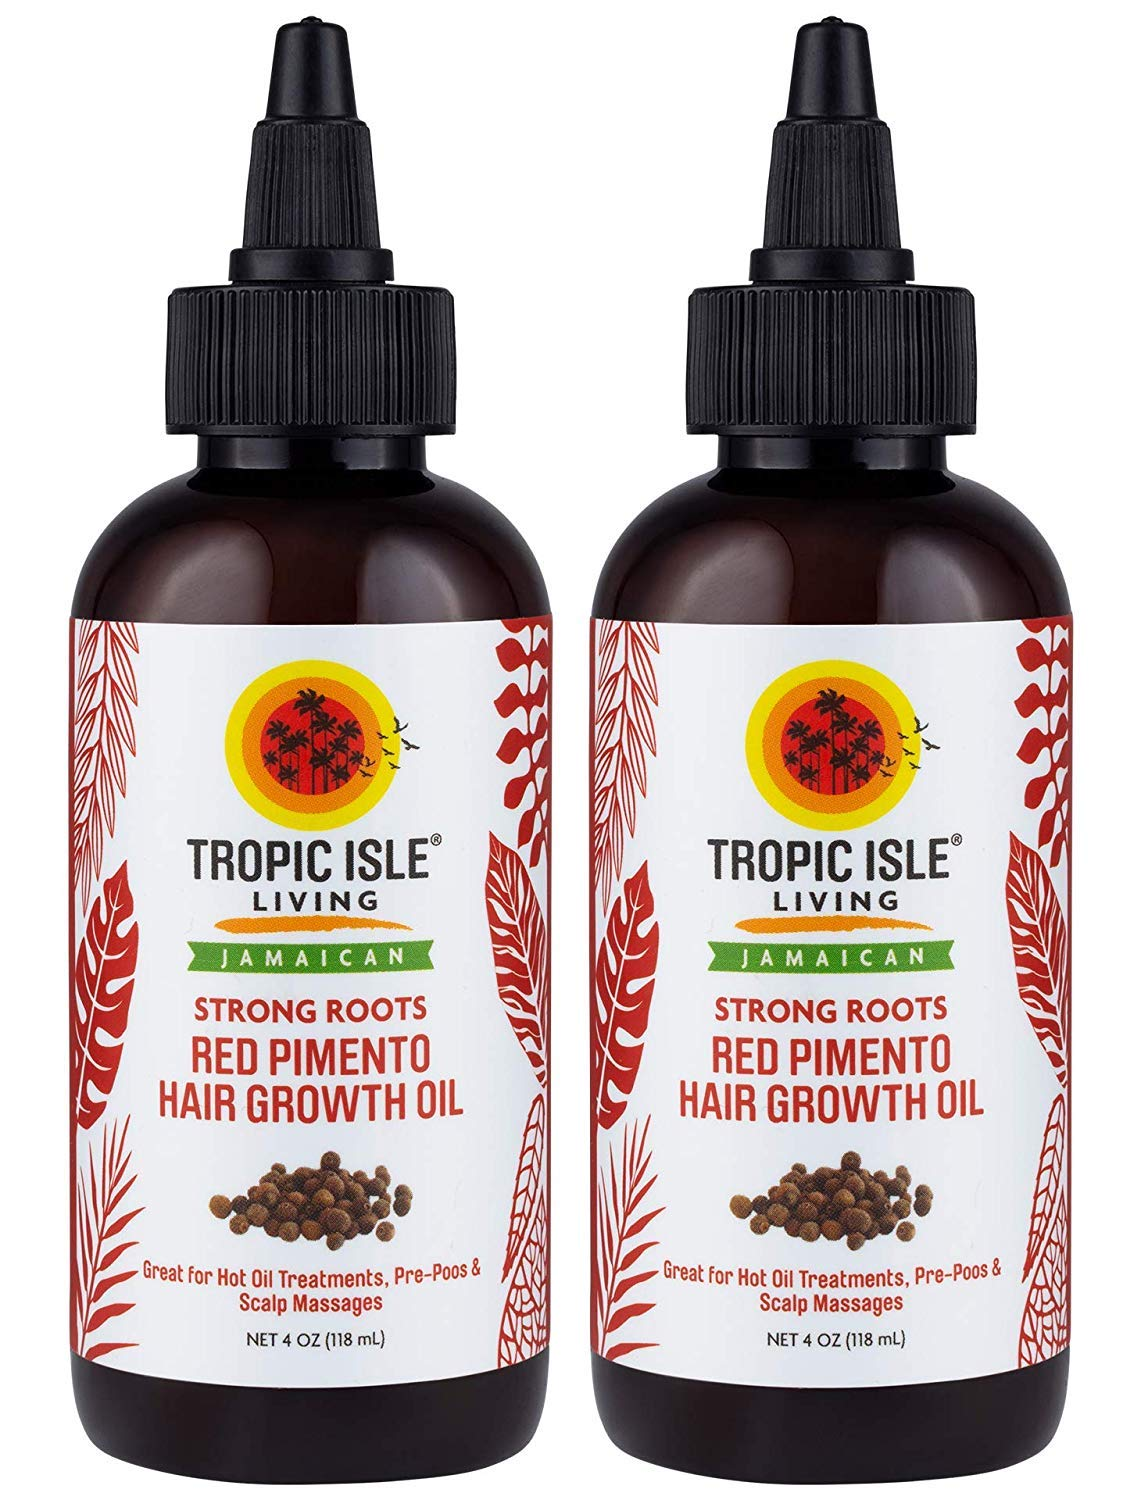 Tropic Isle Living Jamaican Strong Roots Red Pimento Hair Growth Oil 4 oz (Pack of 2)